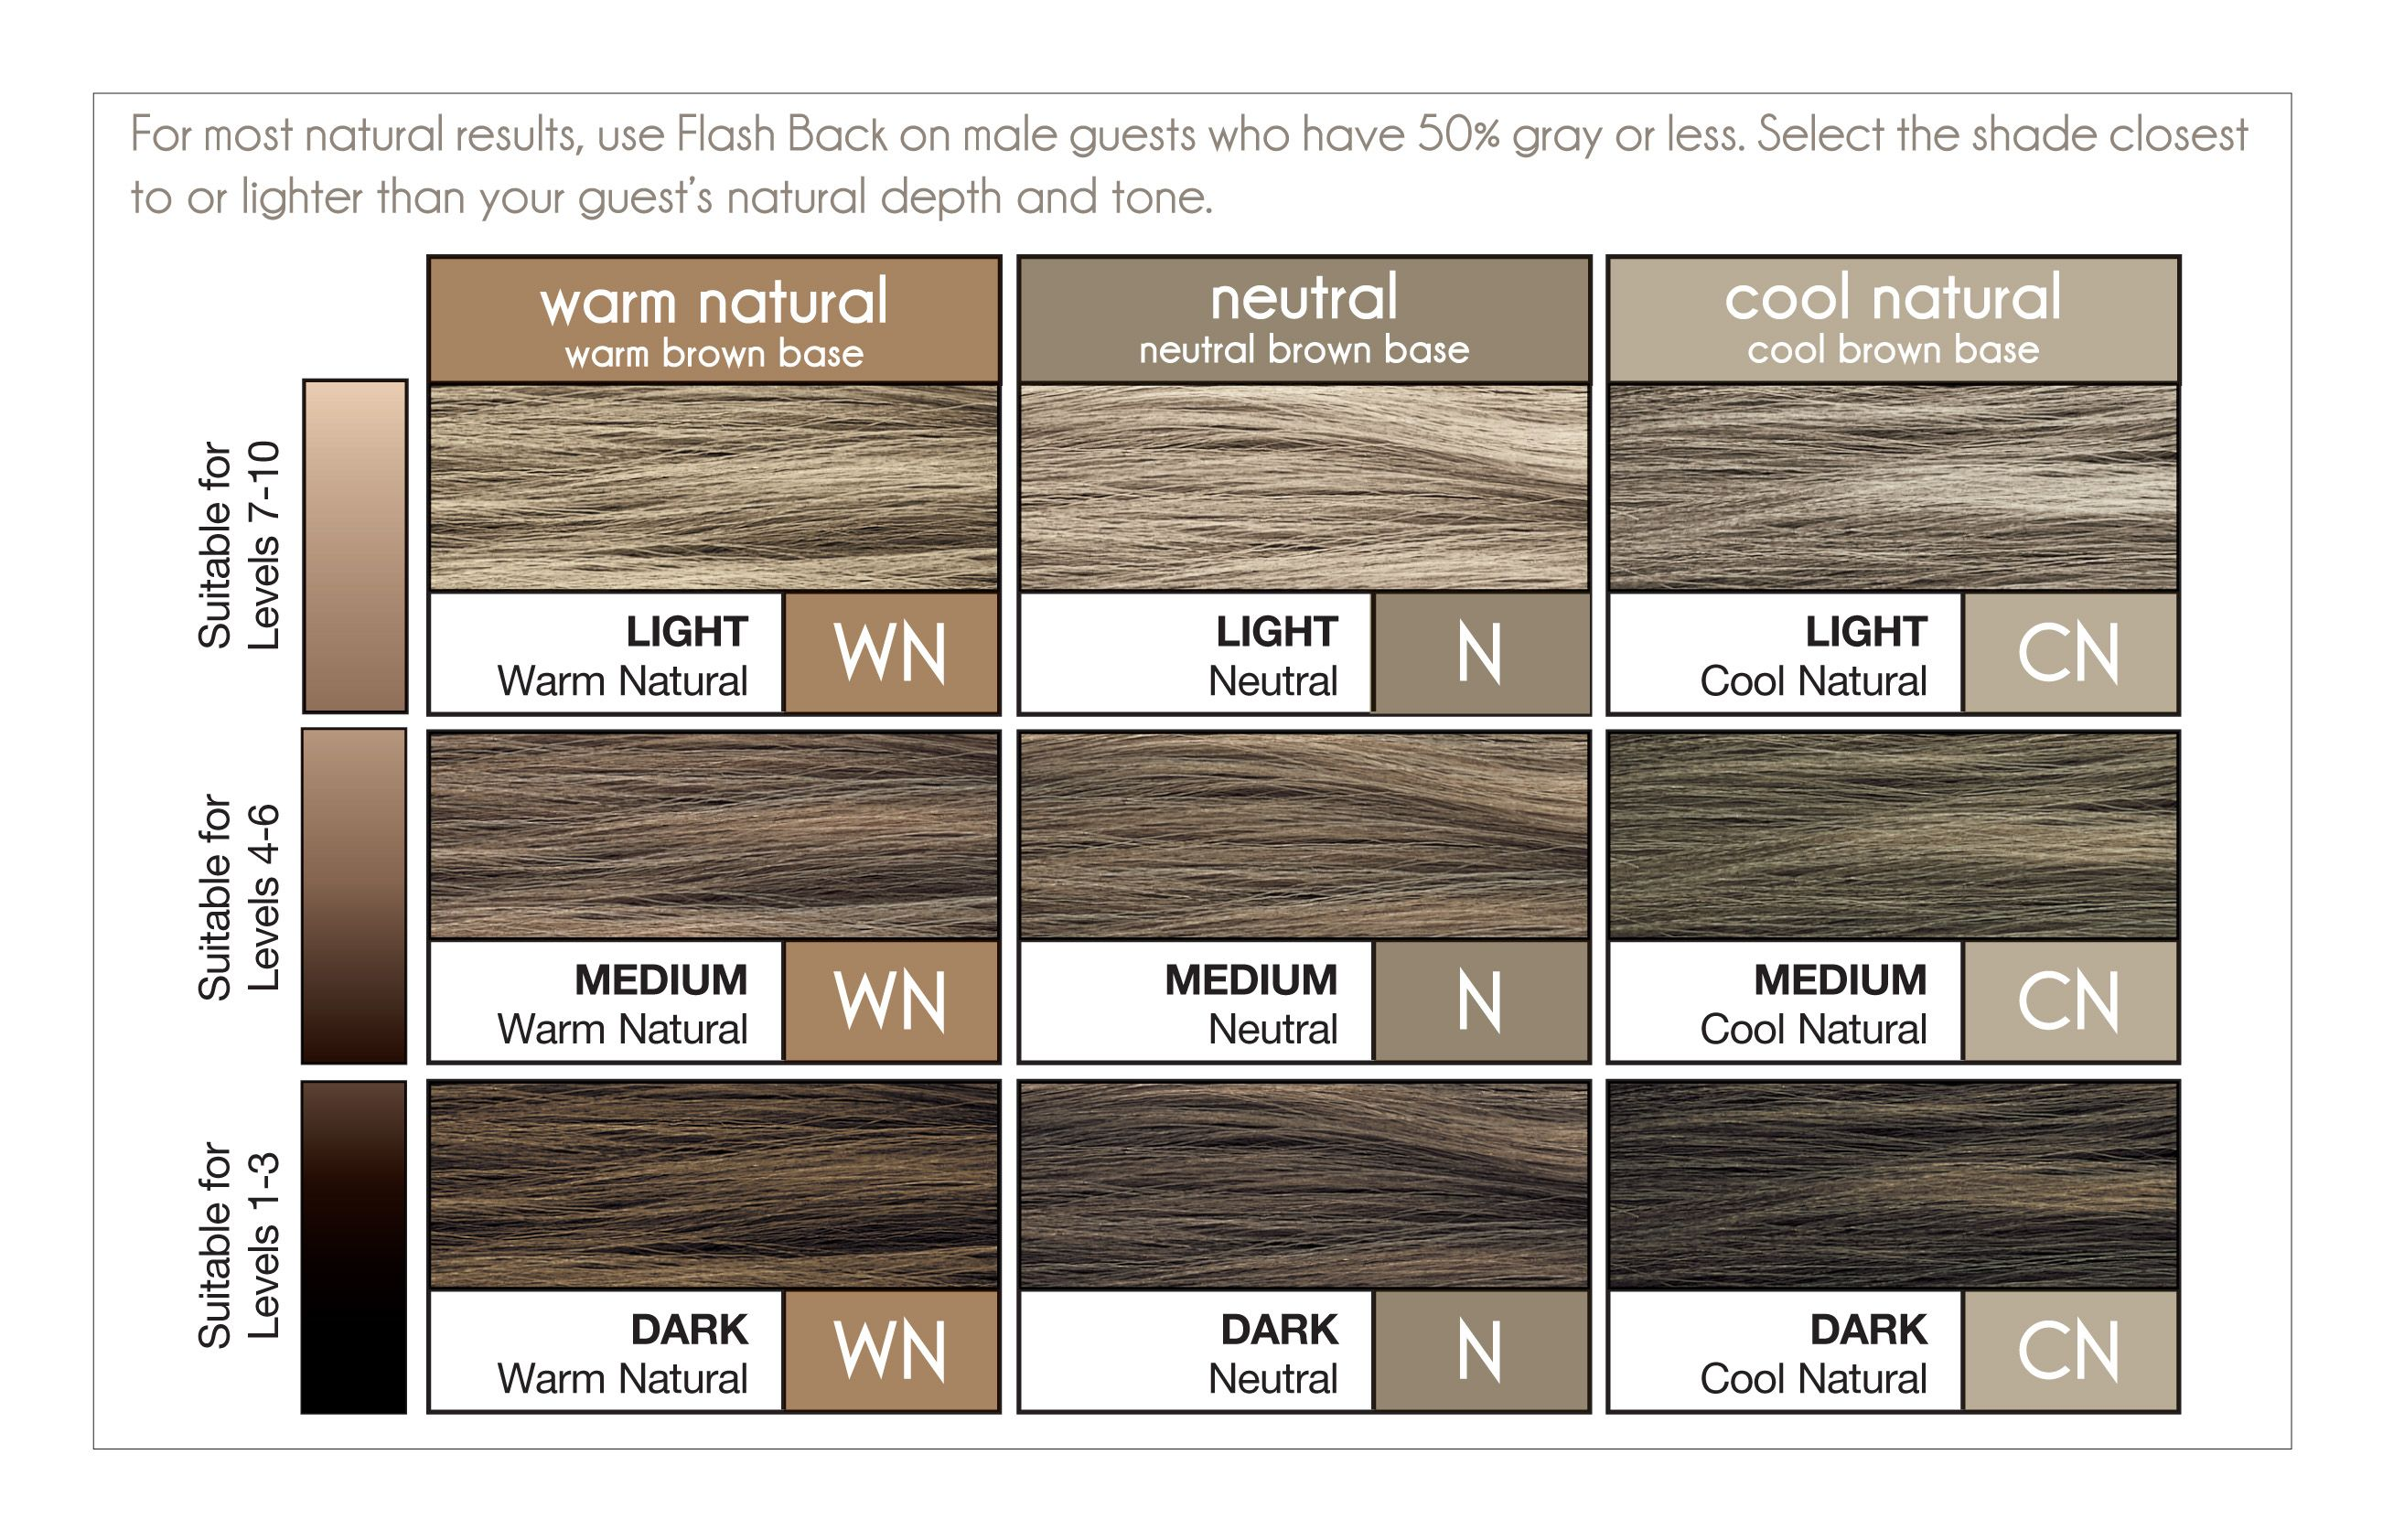 Paul mitchell flash back for men swatch chart paul mitchell paul mitchell flash back for men swatch chart nvjuhfo Image collections